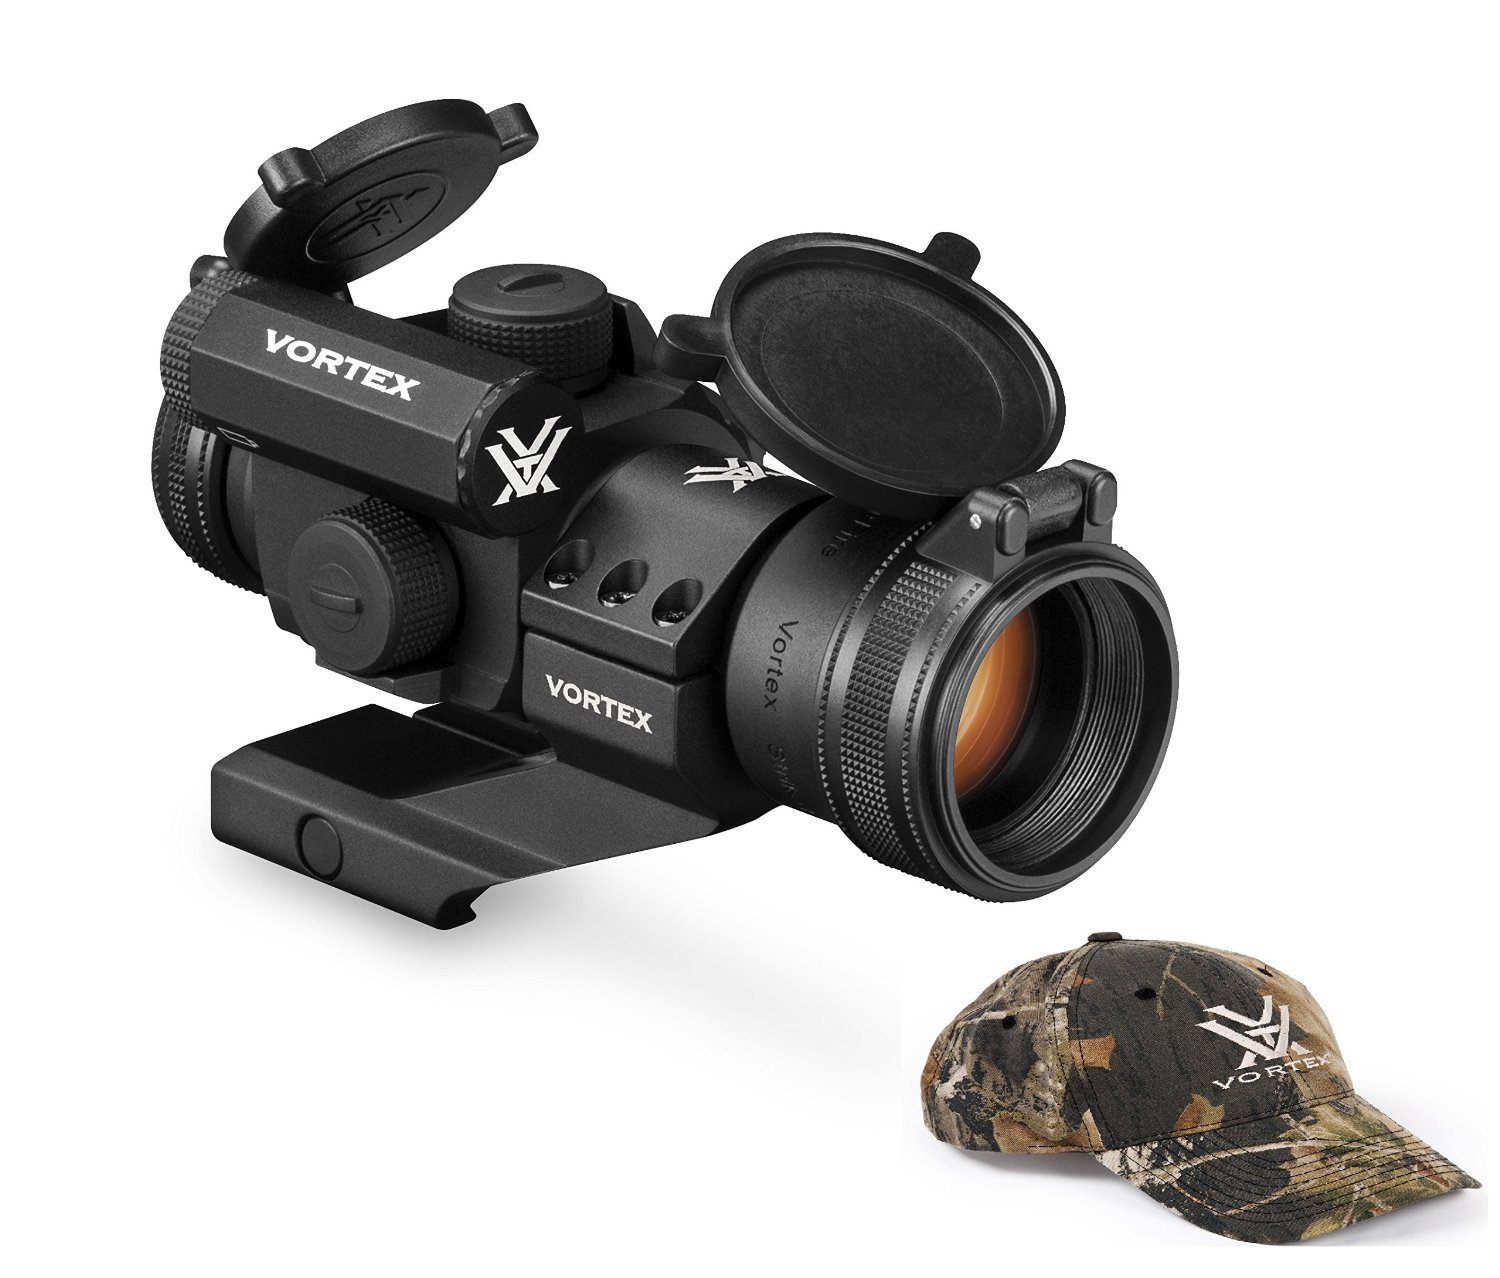 Vortex Optics SF-RG-501 StrikeFire II Red/Green Dot Scope with Vortex Optics Hat (Colors May Vary) by Vortex Optics